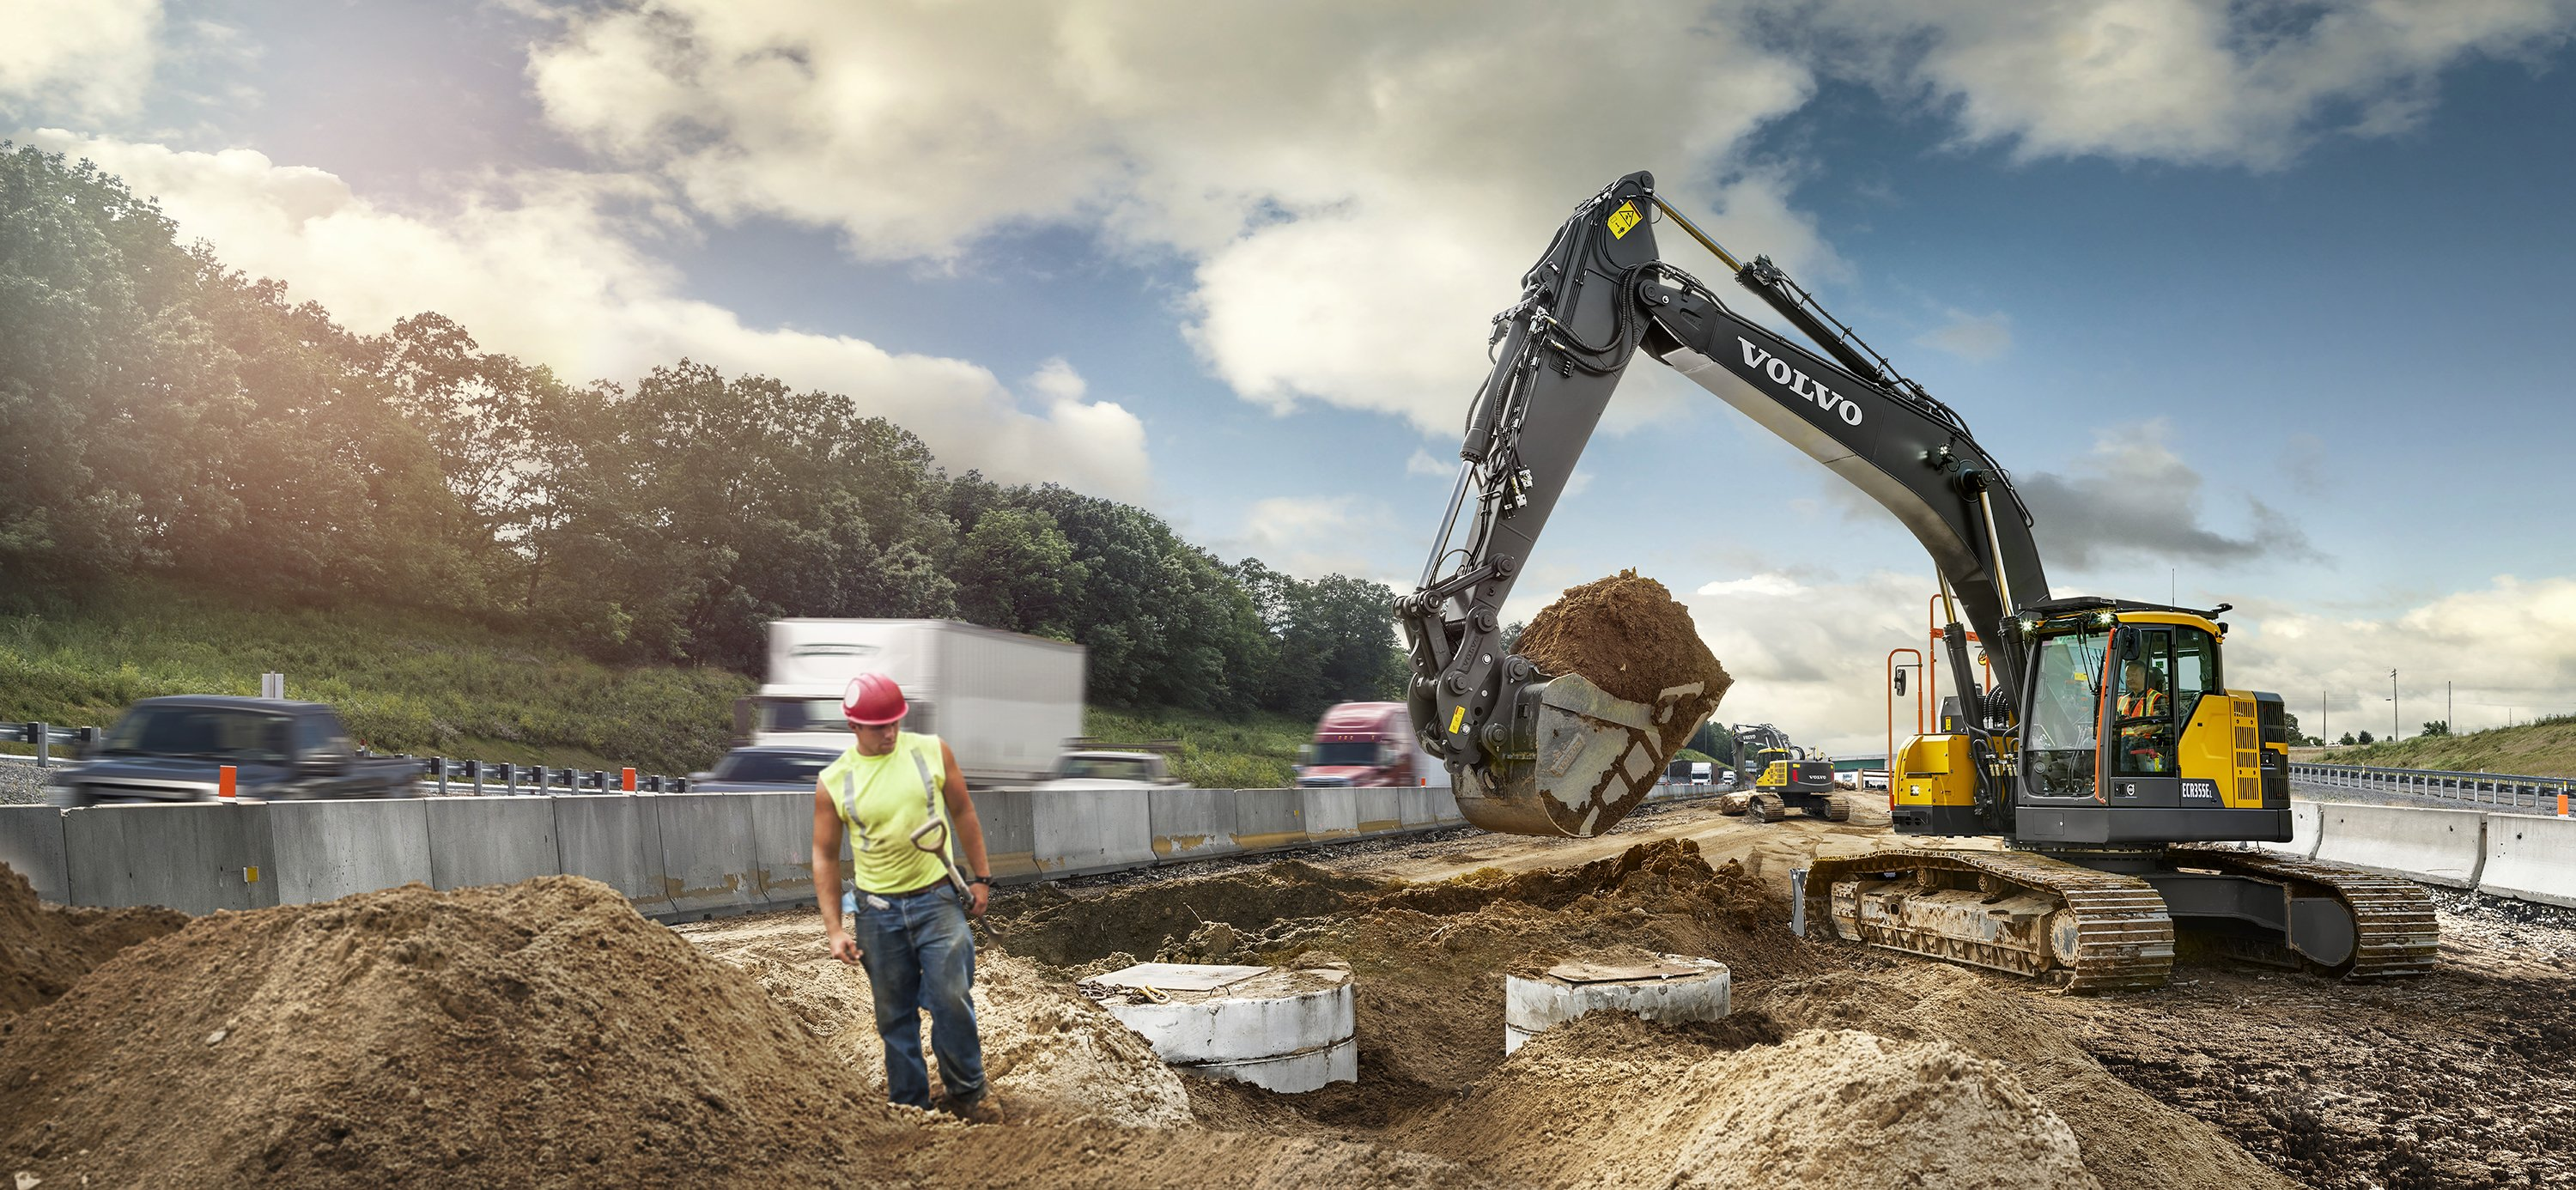 Volvo Adds New Size Class with ECR355E Short Swing Crawler Excavator